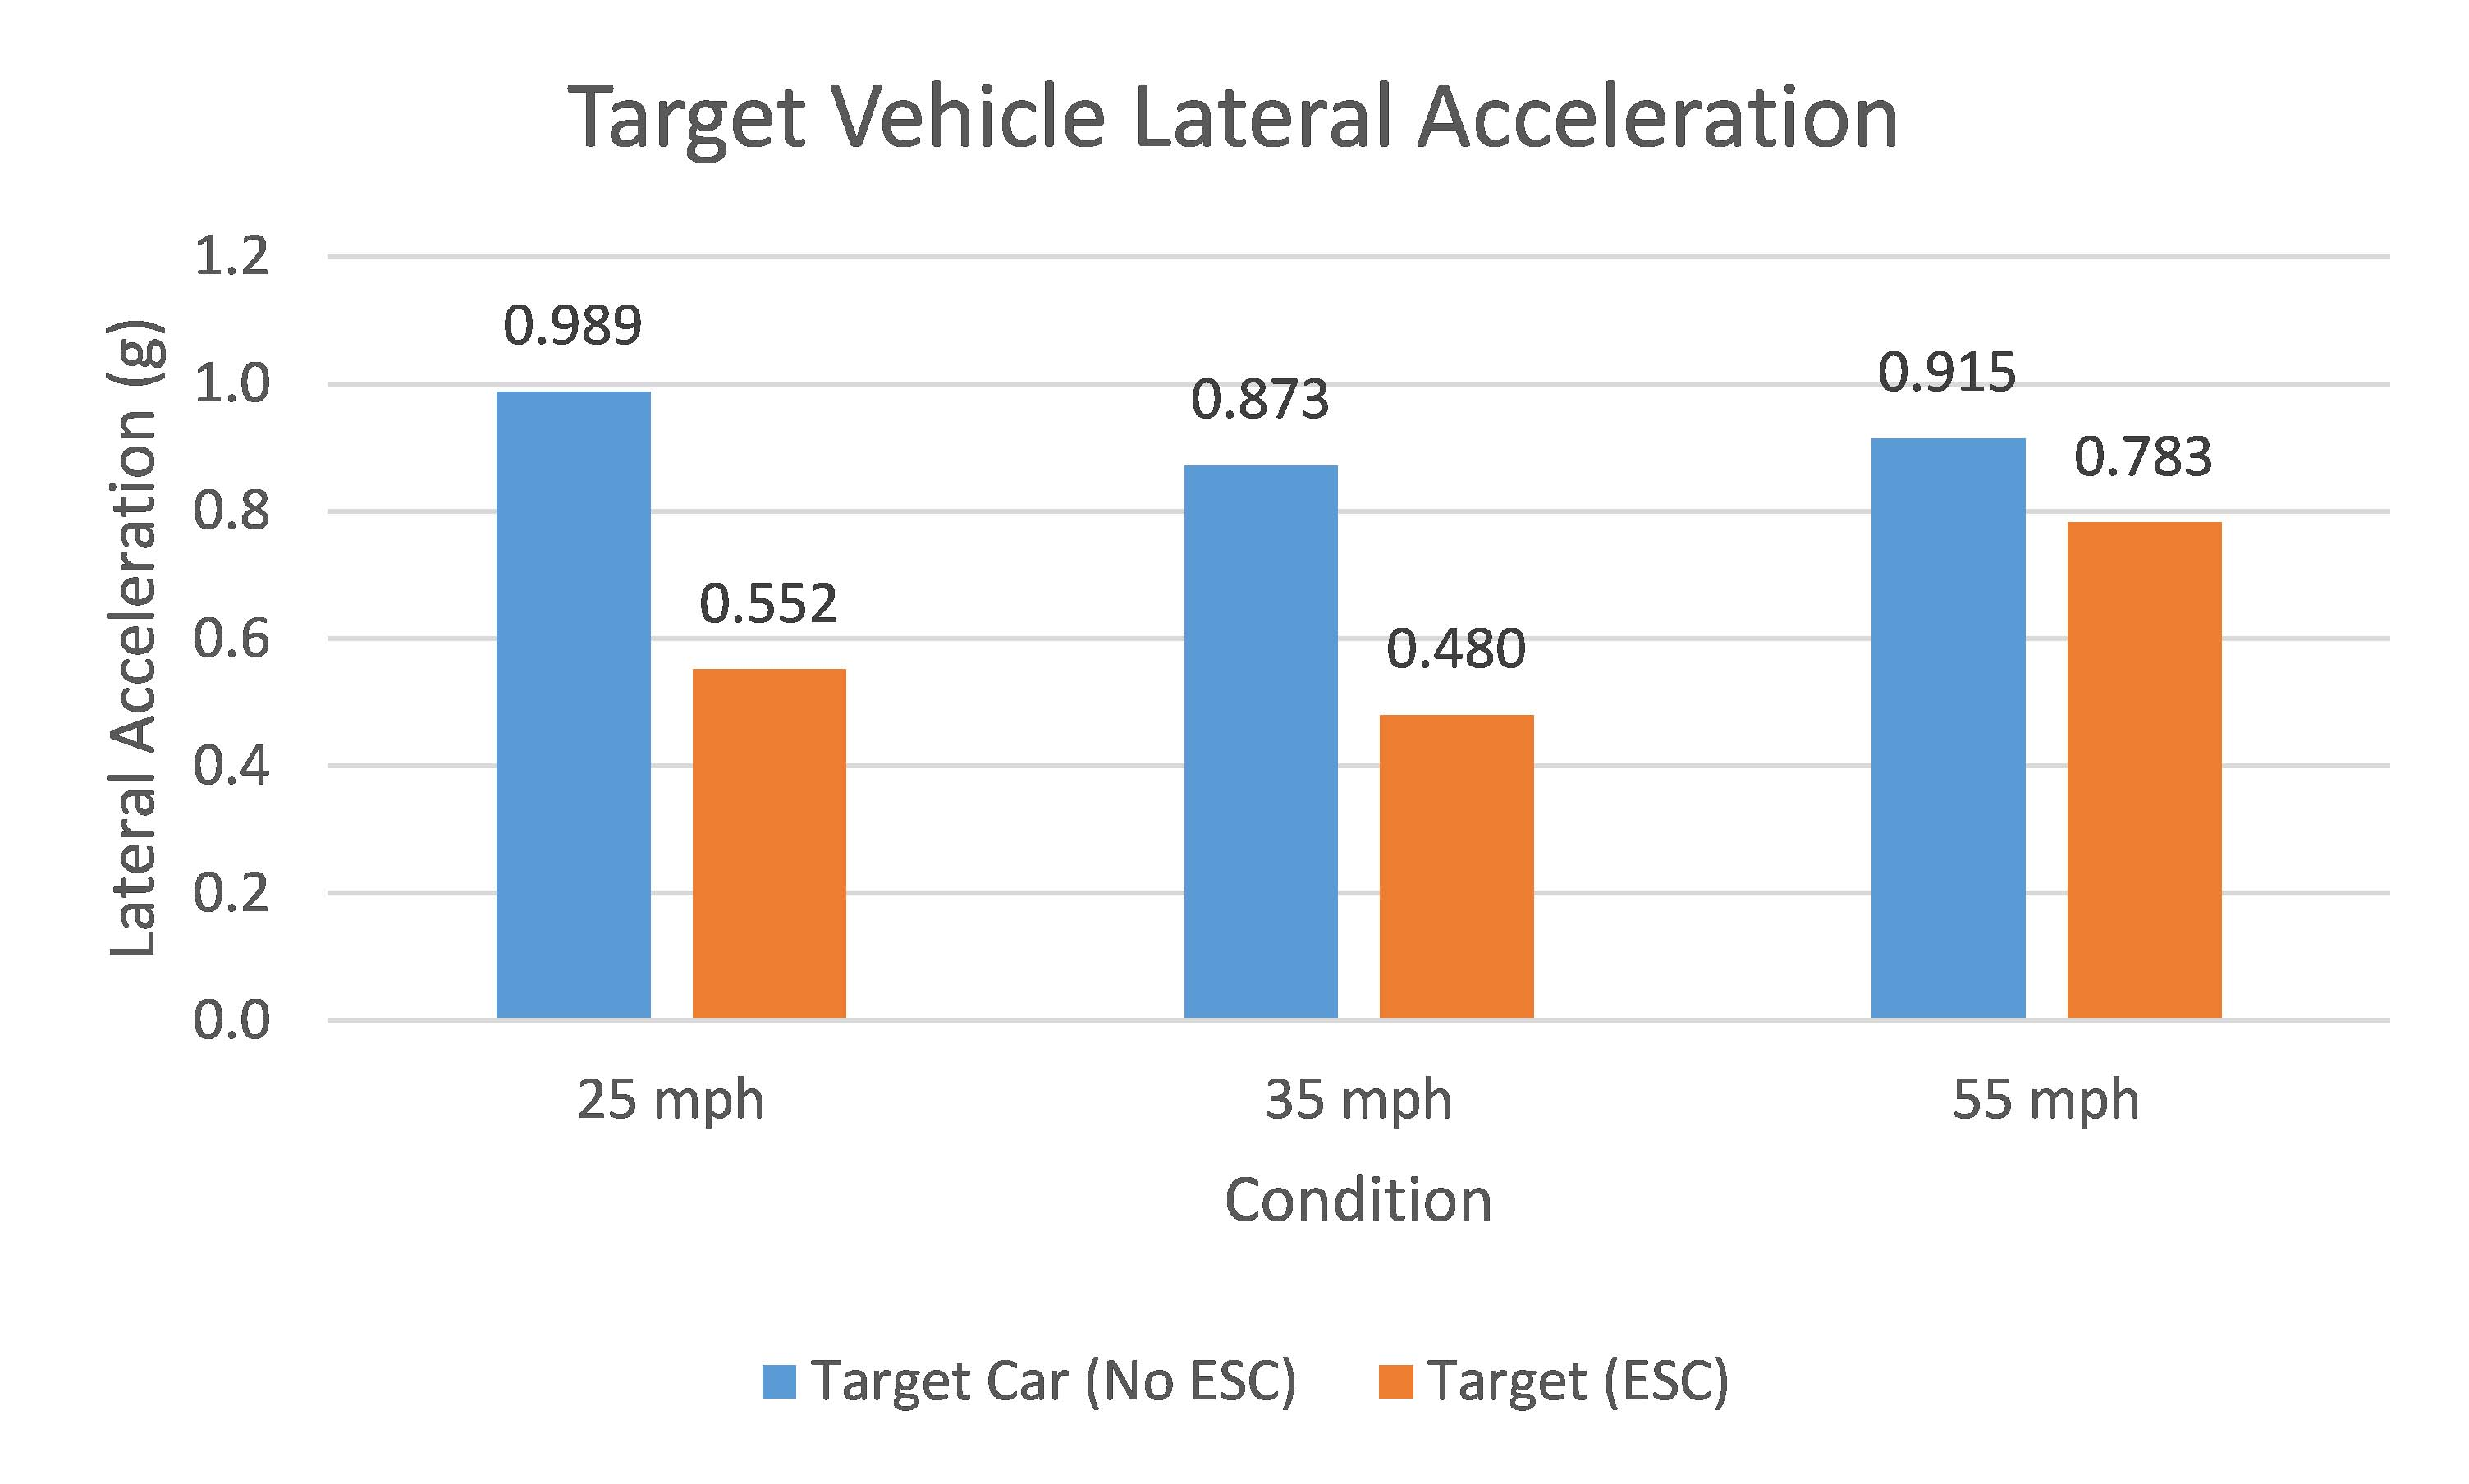 Target Vehlcle Lateral Acceleration